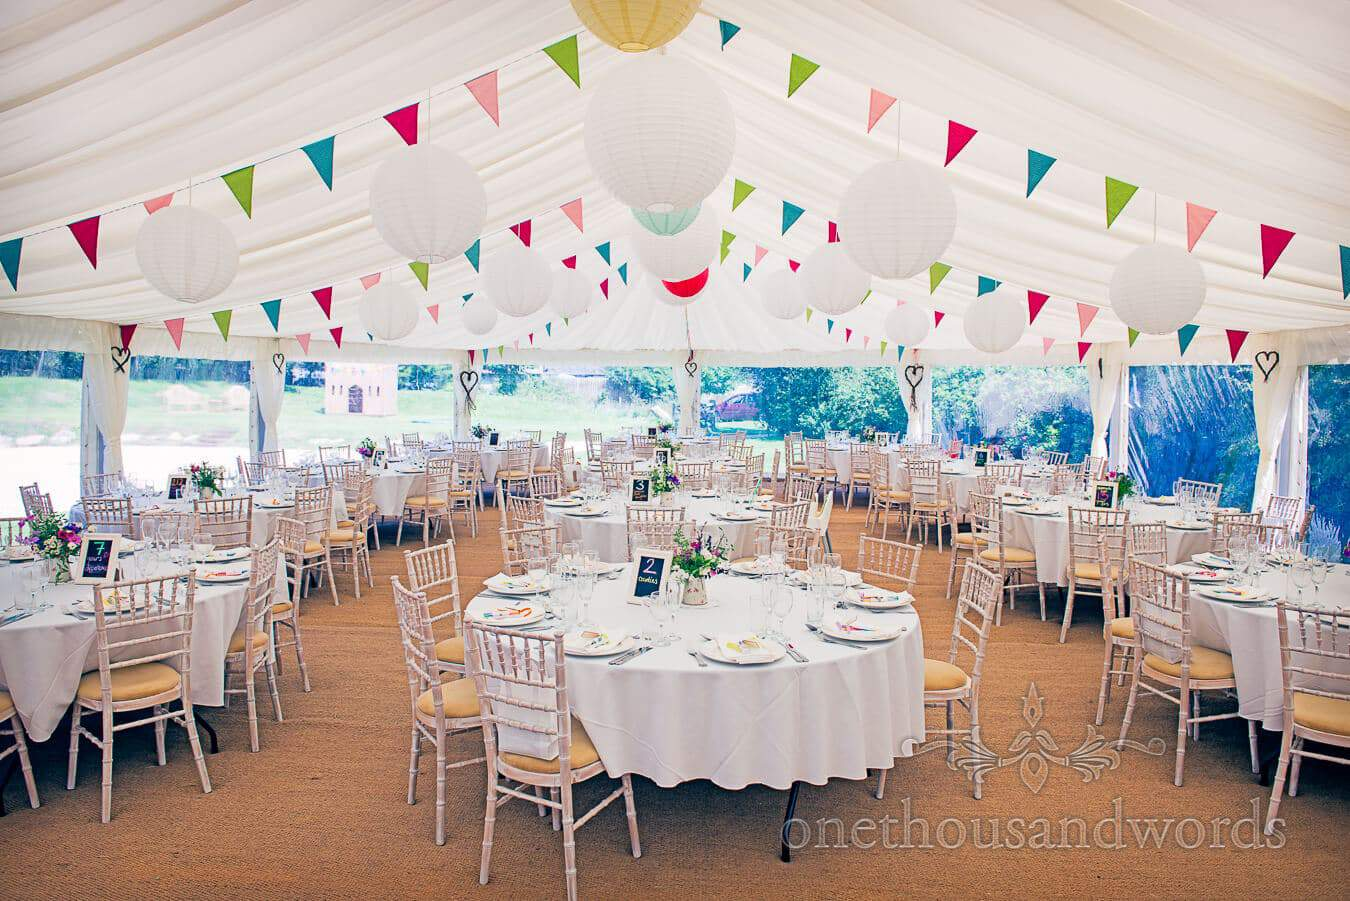 Wedding Marquee at Dorset Home Wedding with colourful wedding bunting